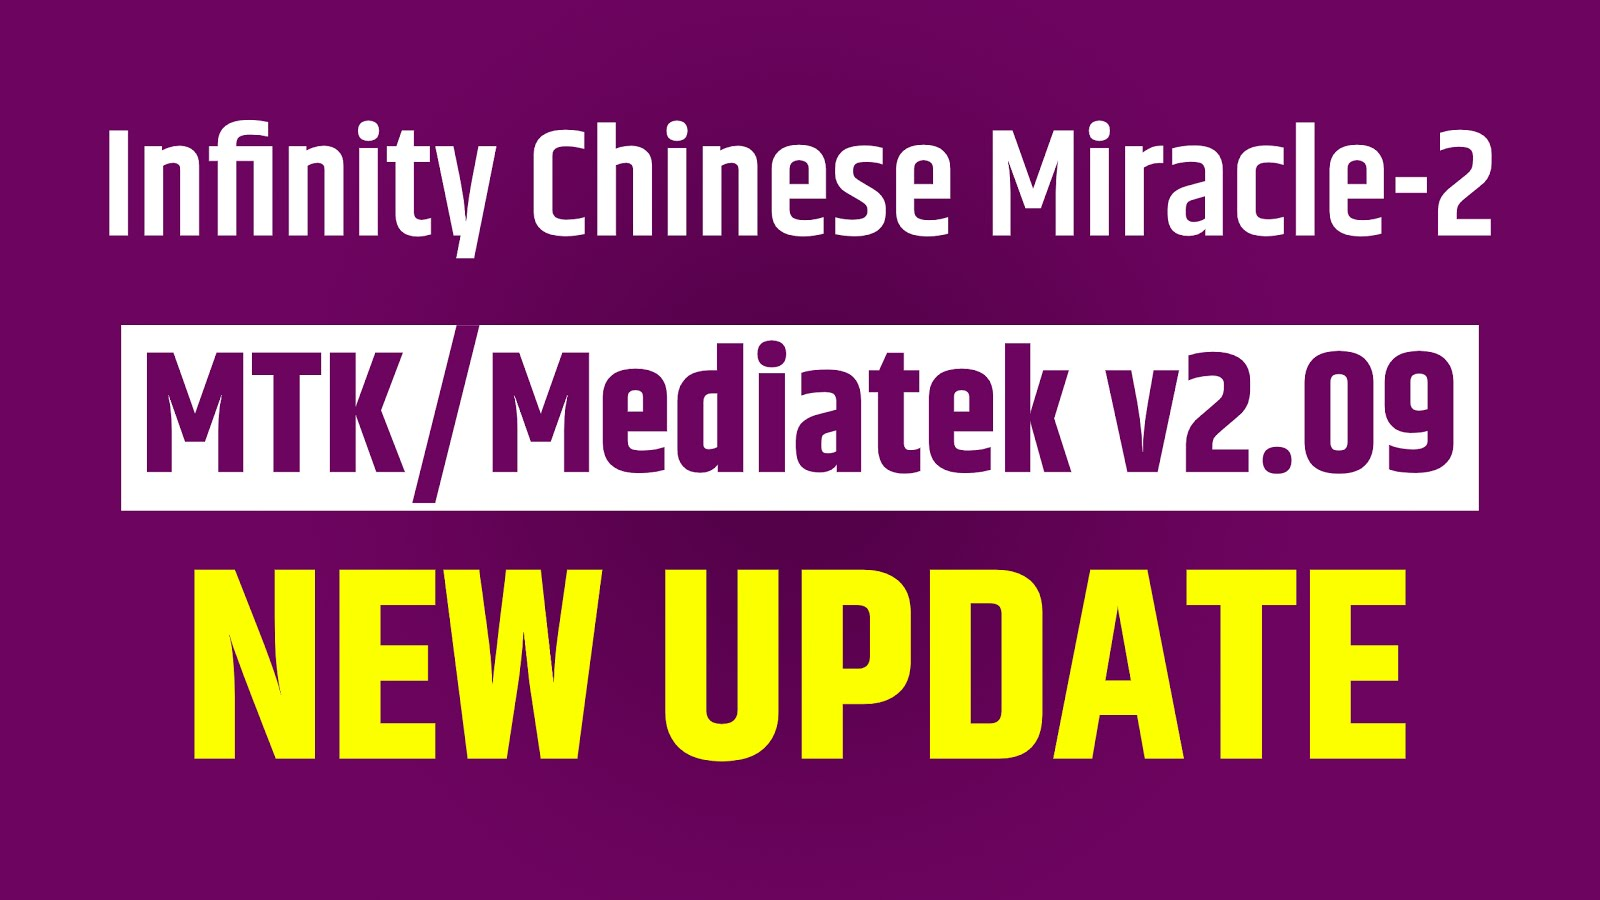 Infinity Chinese Miracle-2